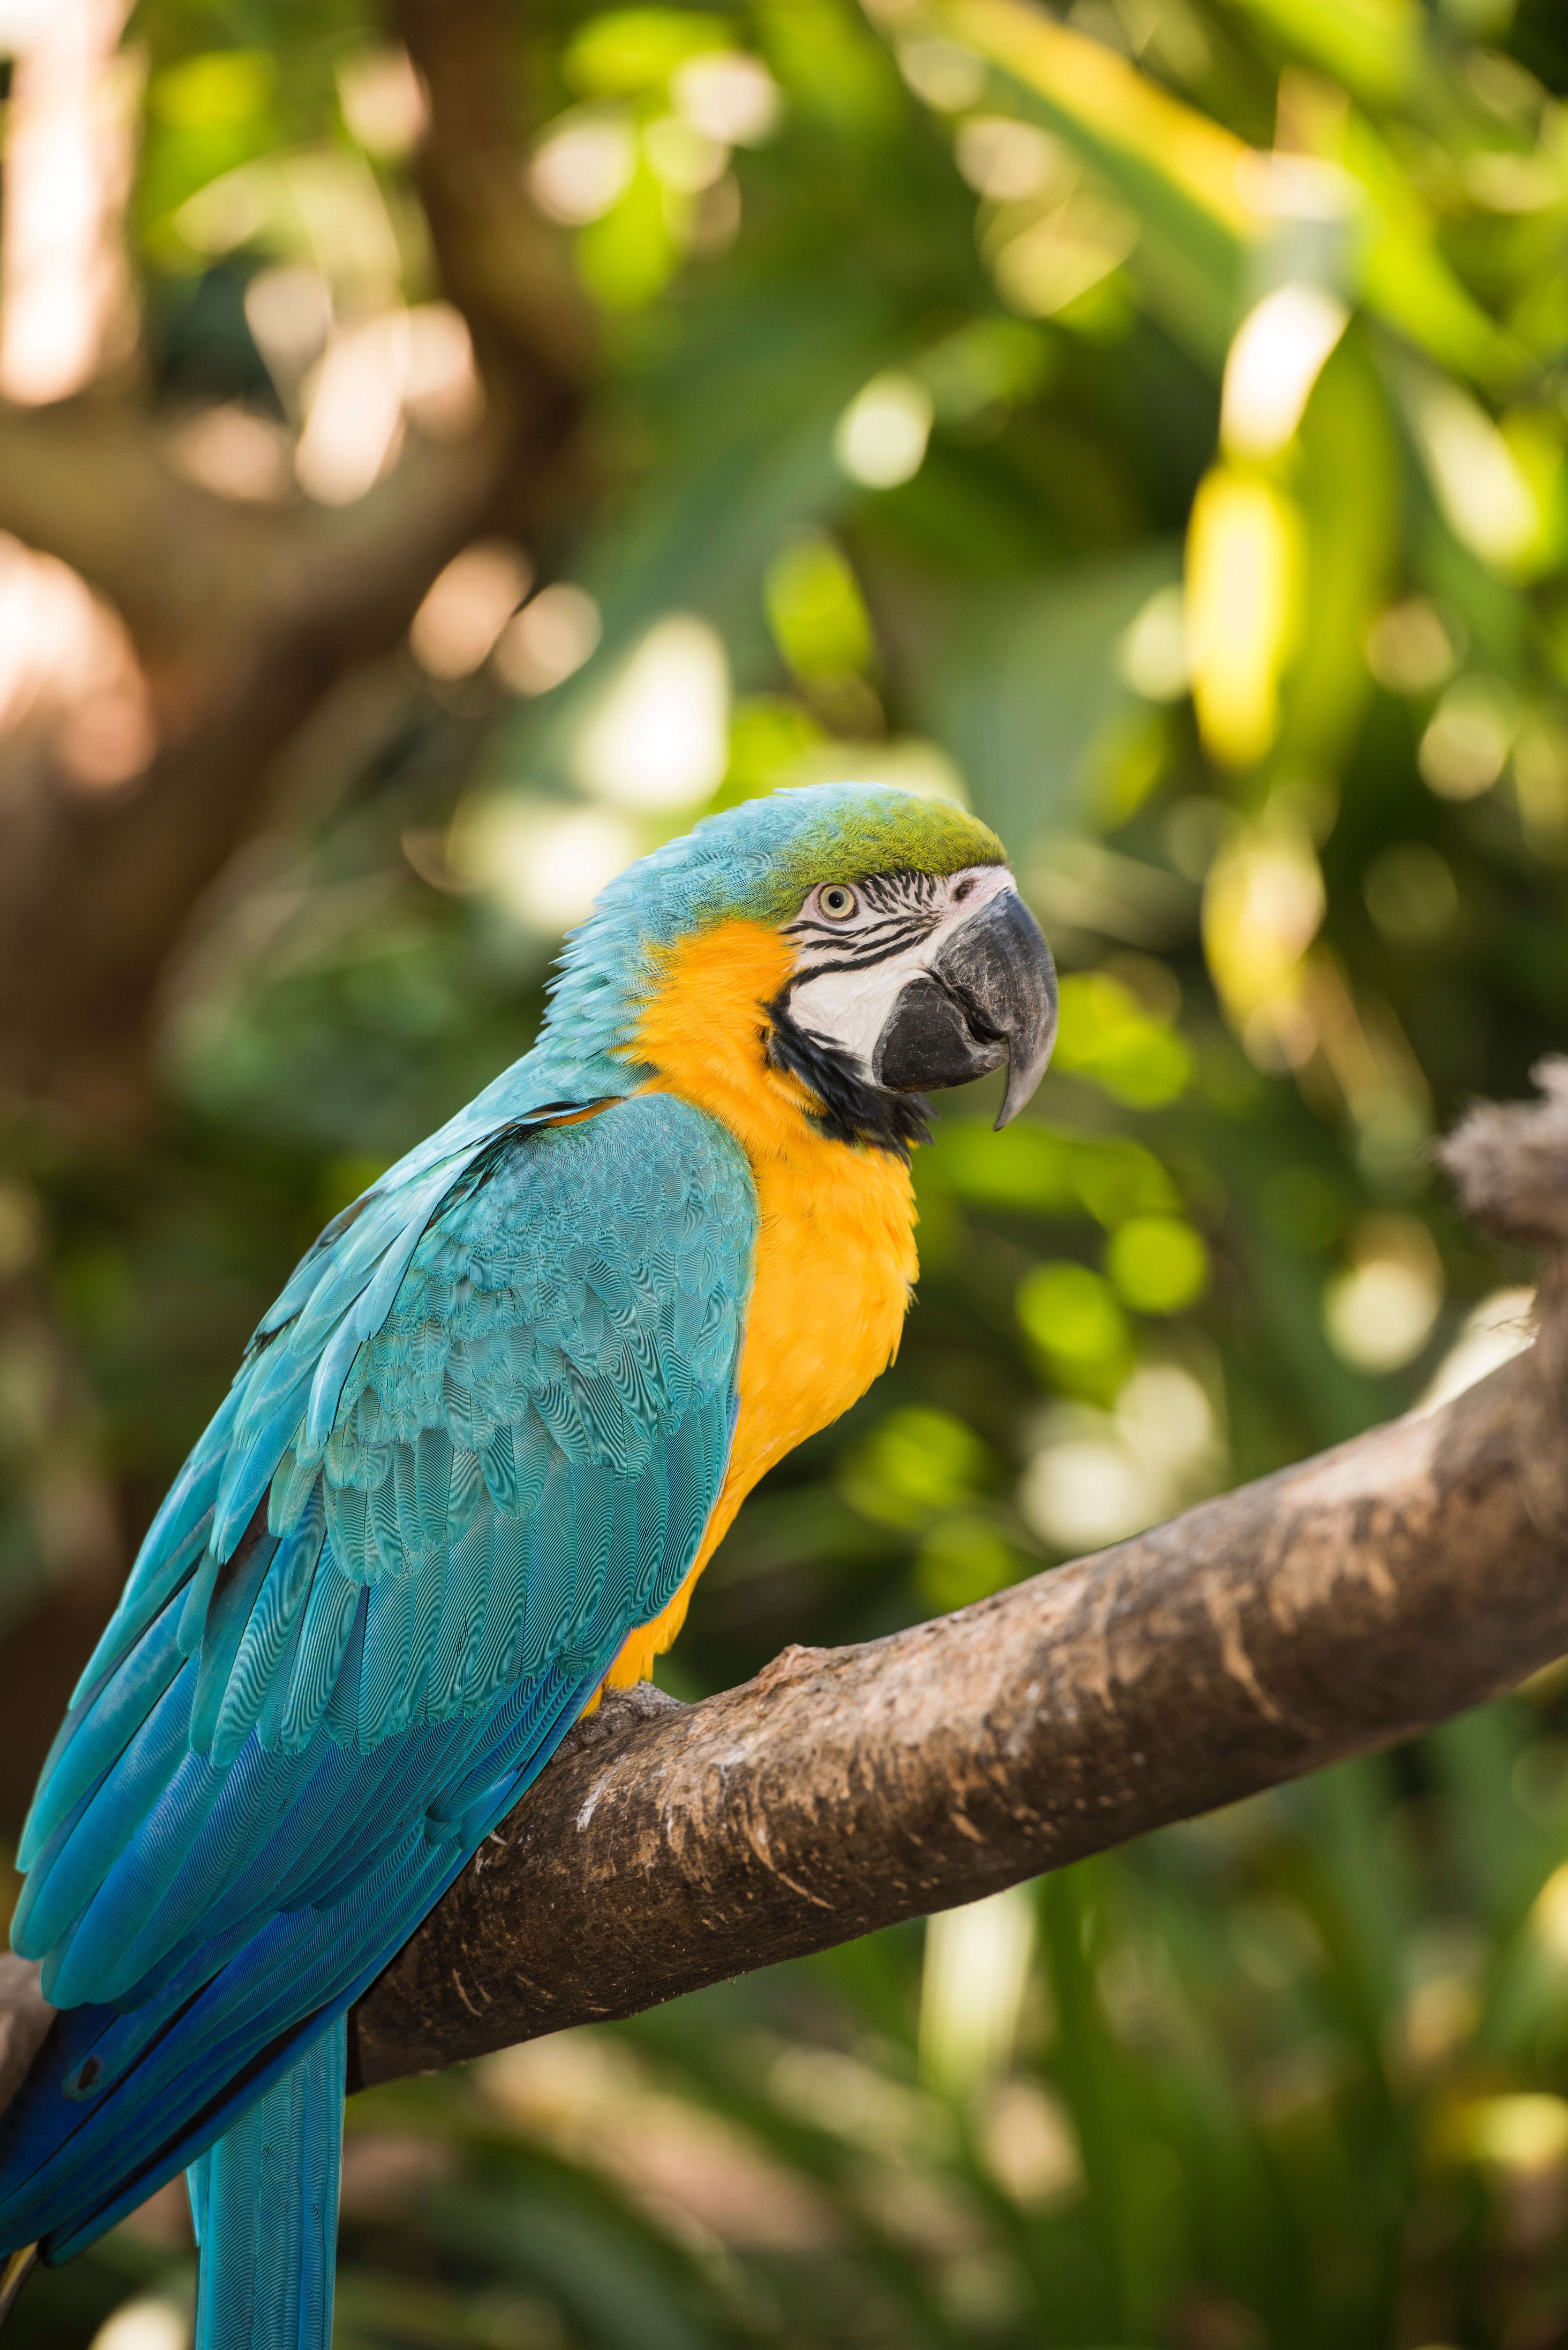 152334 download wallpaper Animals, Macaw, Parrots, Bird, Multicolored, Motley, Tropical screensavers and pictures for free